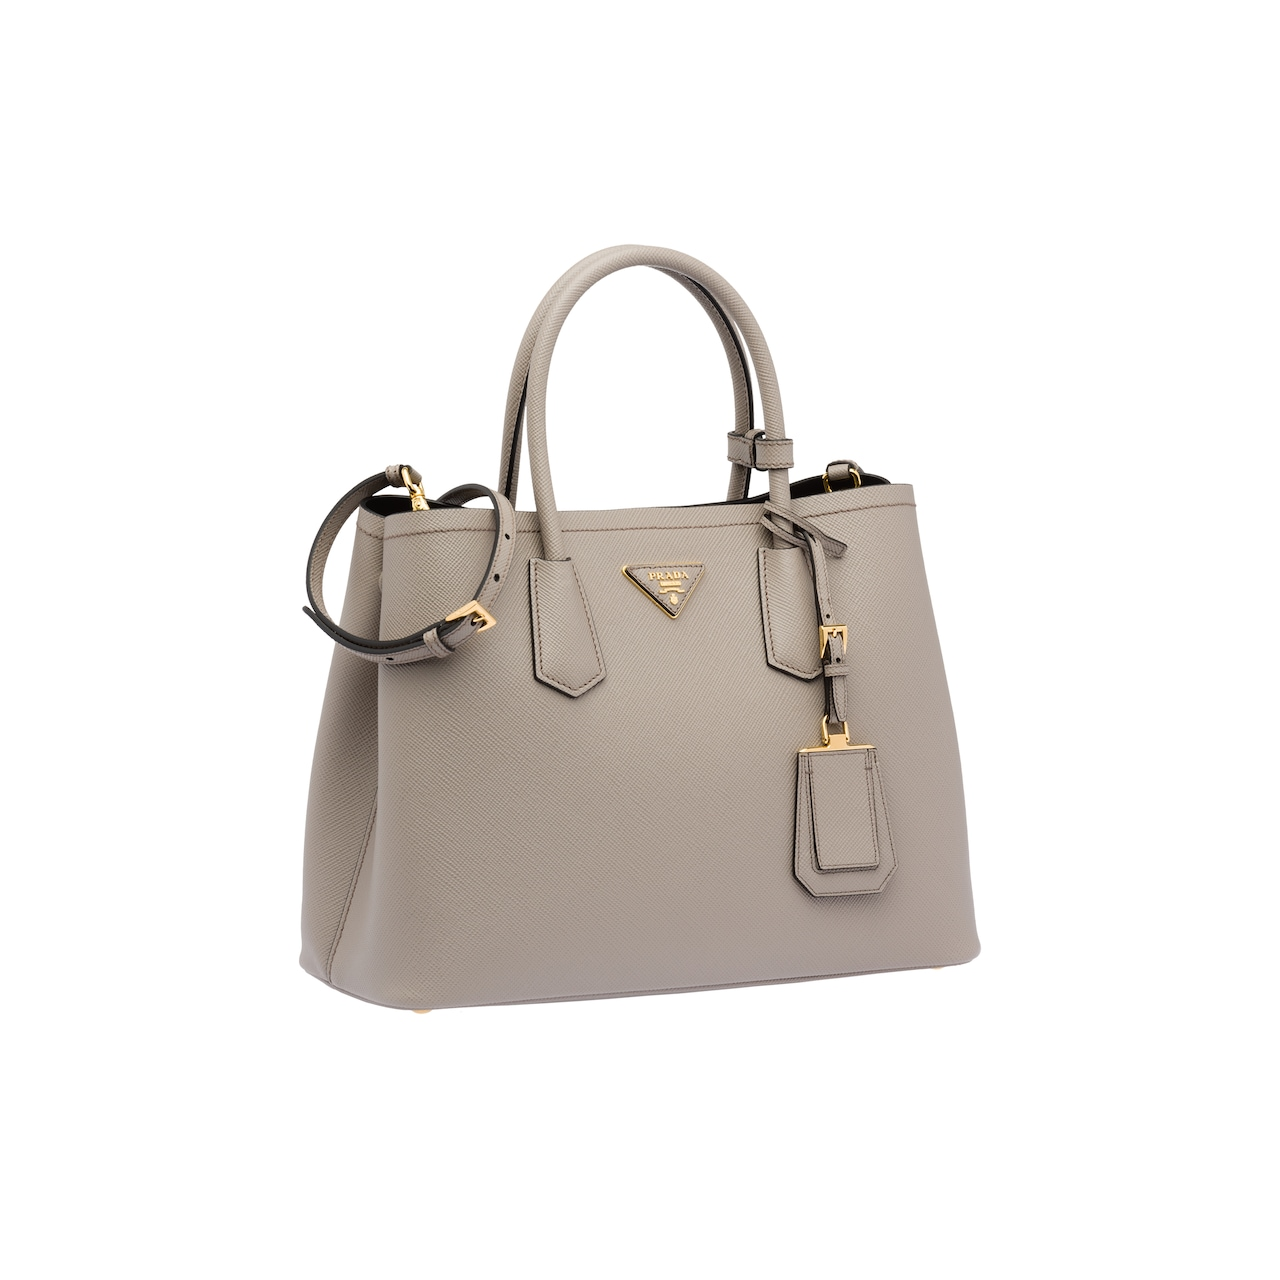 Prada Double Bag Large